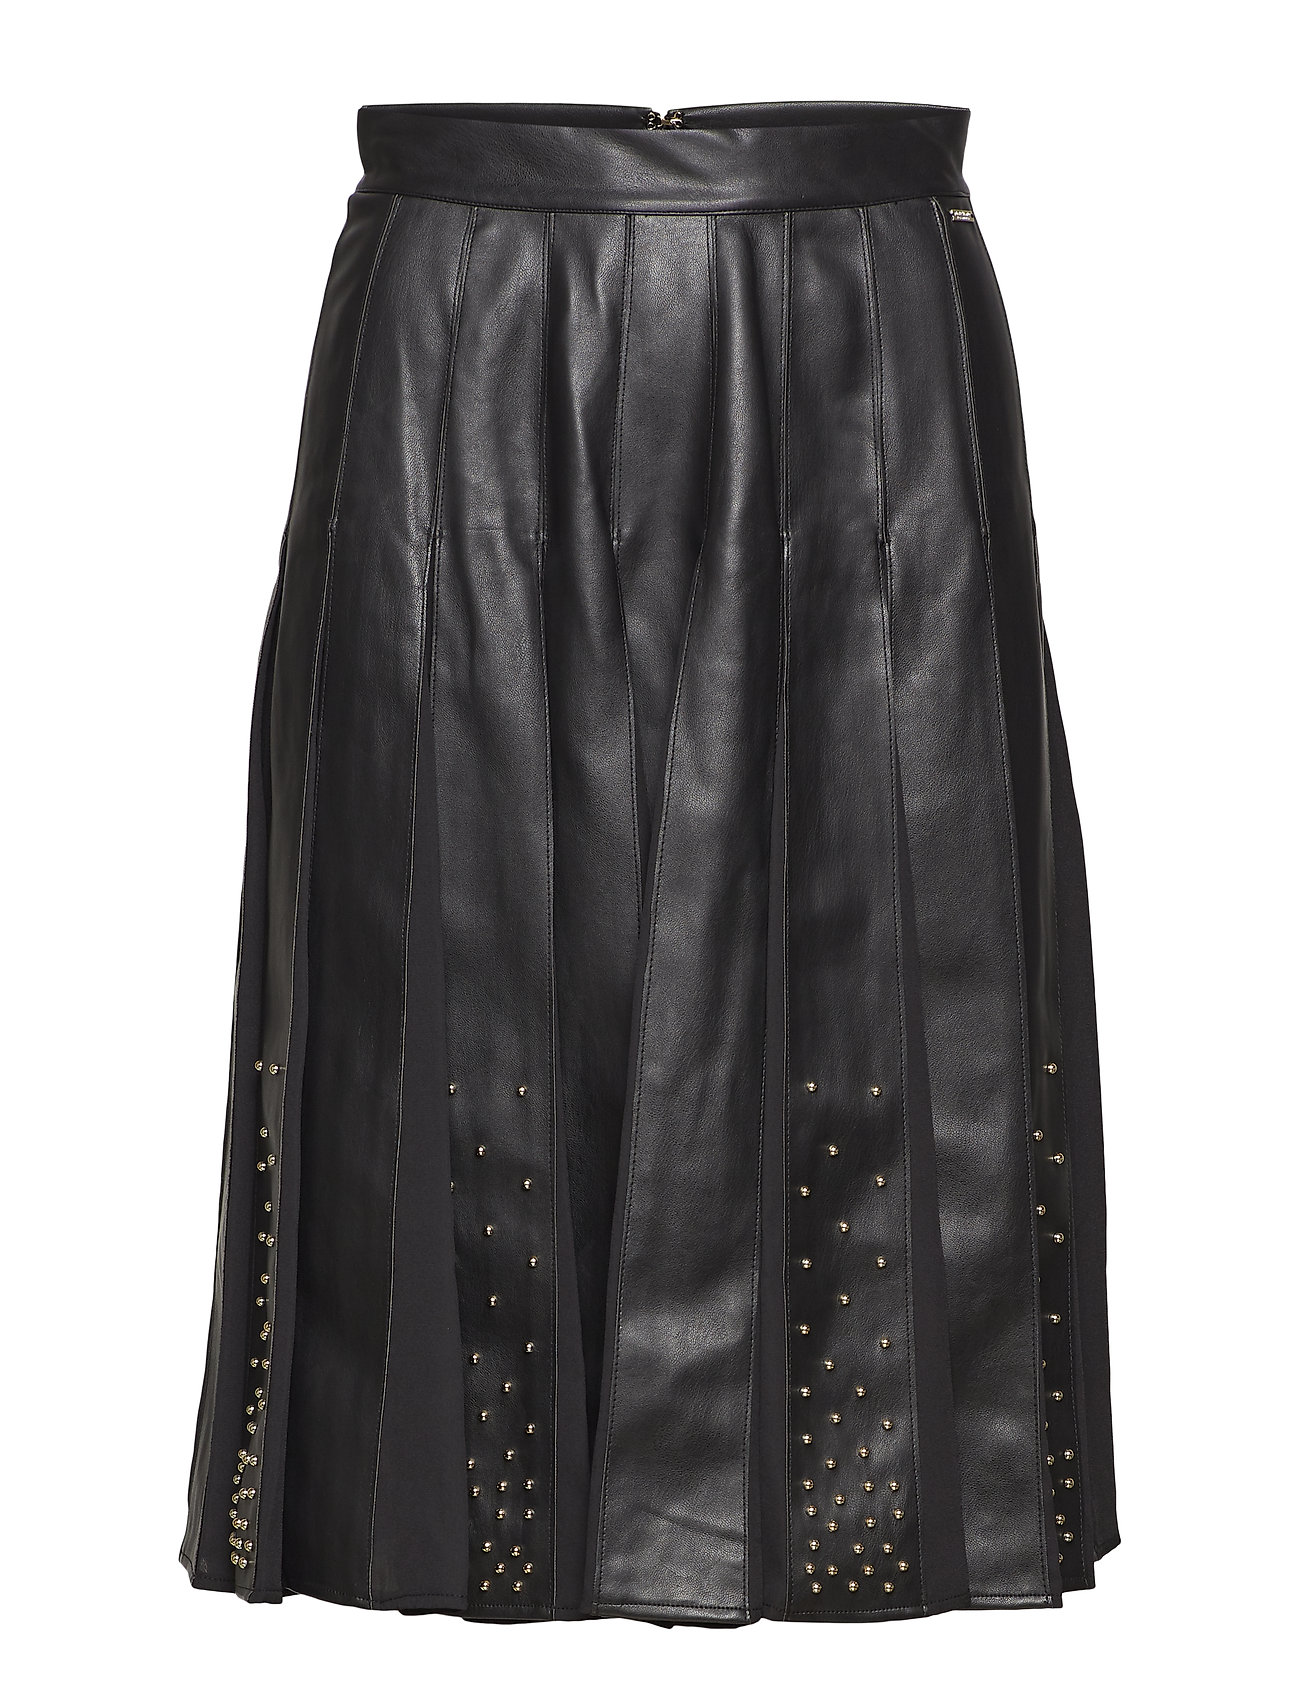 Marciano by GUESS MALVINA LEATHER PLEATED SKIRT - JET BLACK A996